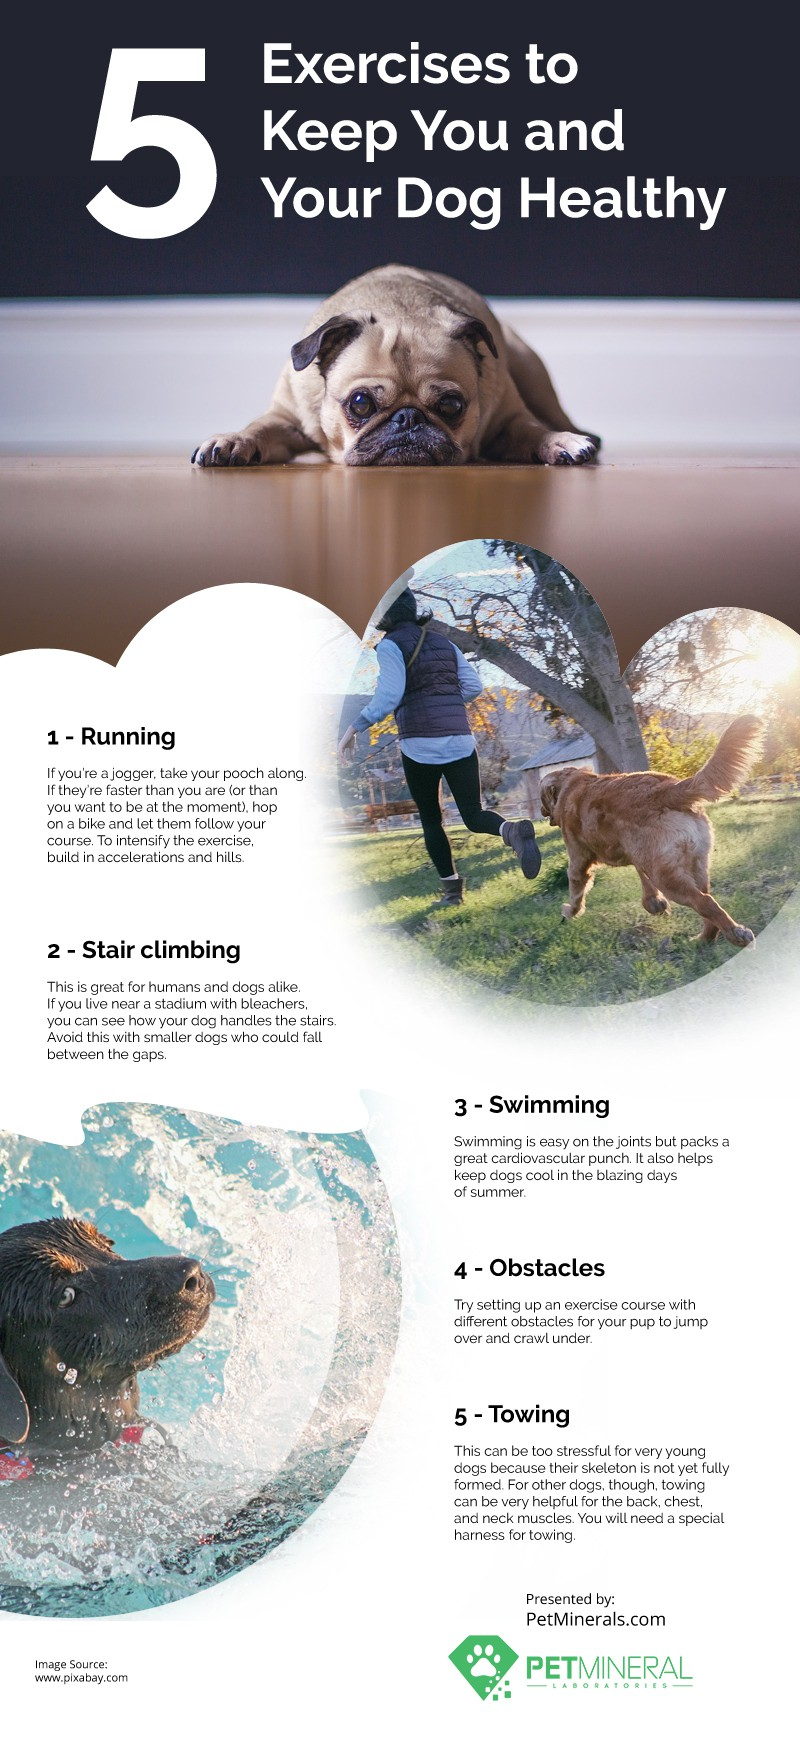 5 Exercises to Keep You and Your Dog Healthy